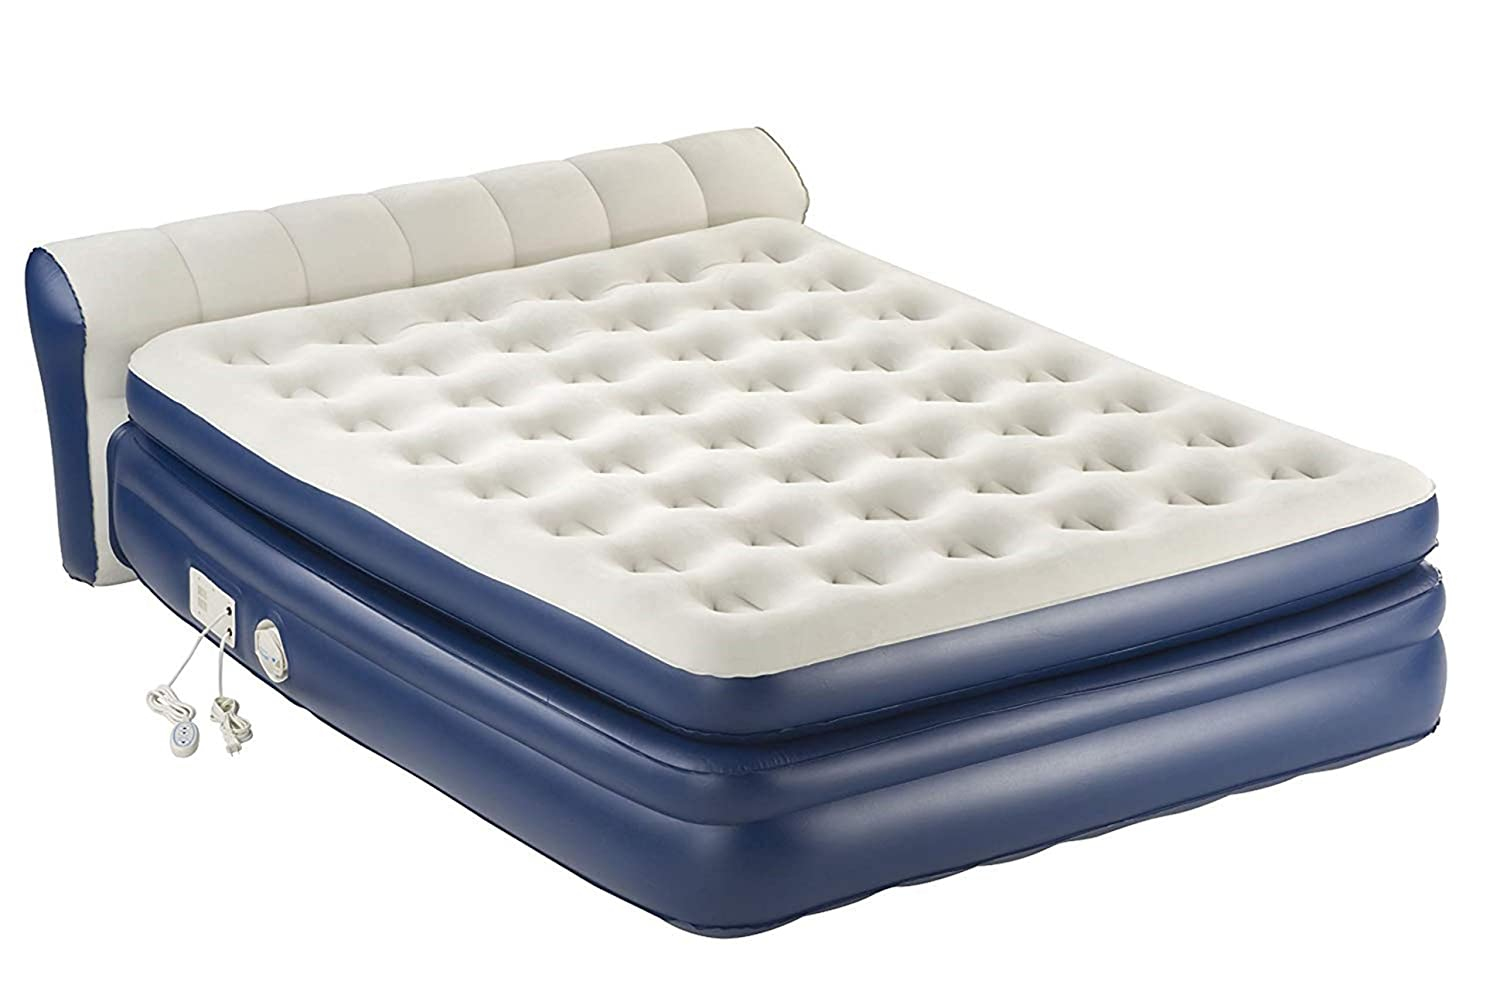 Air Mattress With Pump. This DuraBeam Ultra Plush Headboard Blow Up Airbed With Built In Electric Pump For Adults Indoor Or Outdoor Use. Raised Inflatable Bed Is Best As Camping Or Guest Bed Twin 31 Air-Mattress